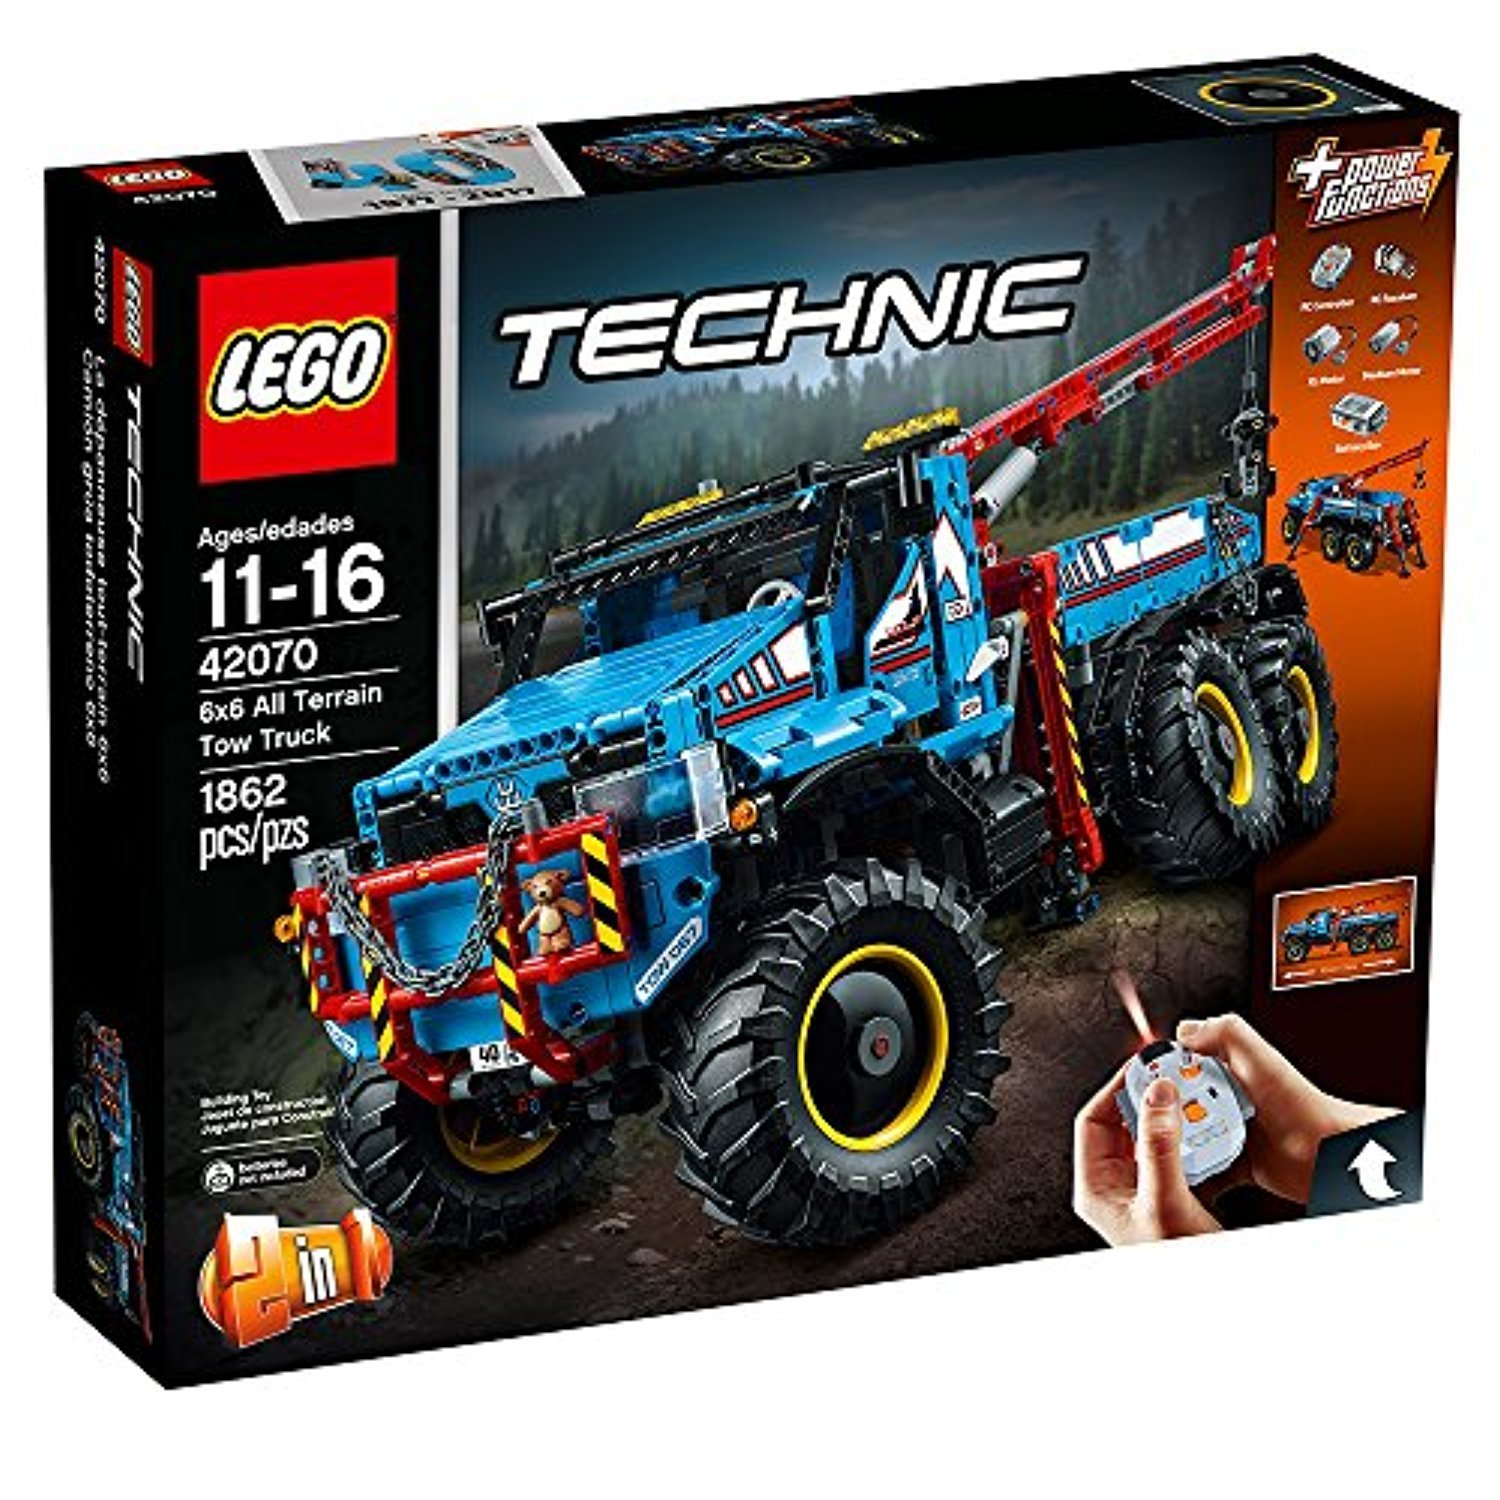 LEGO Technic 6 x 6 All Terrain Tow Truck 42070 Building Kit